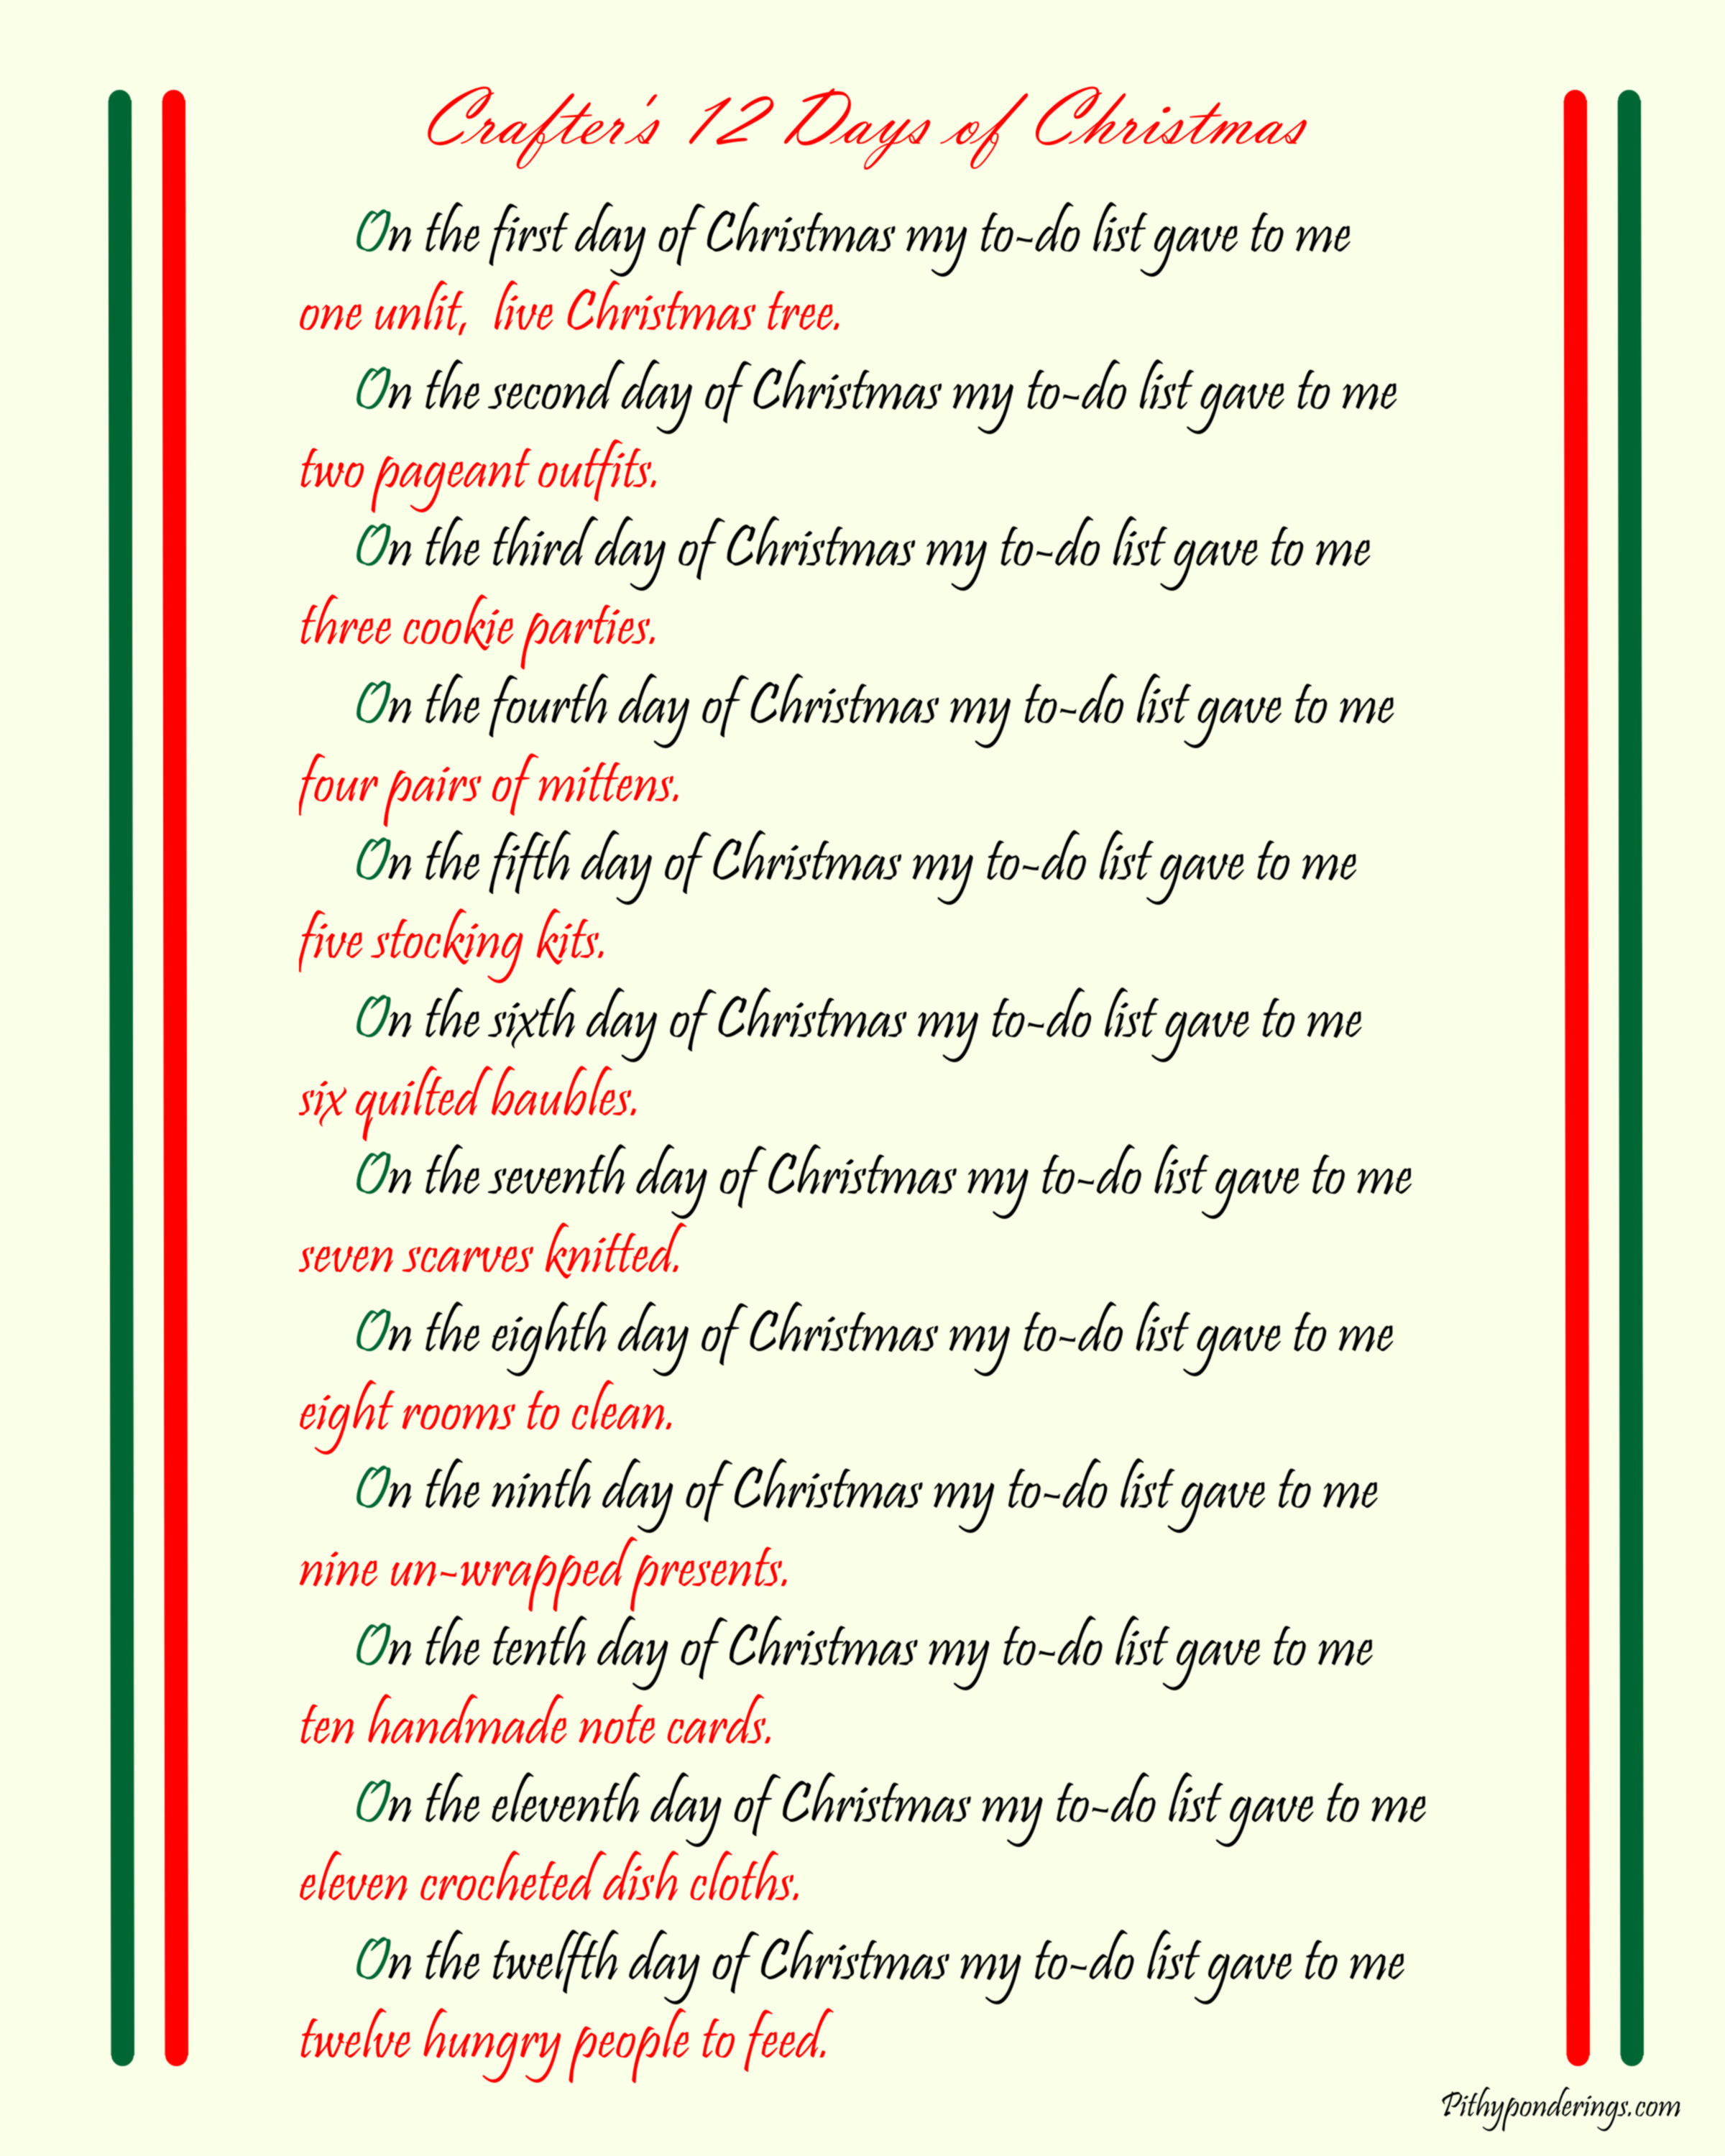 Crafters 12 Days of Christmas